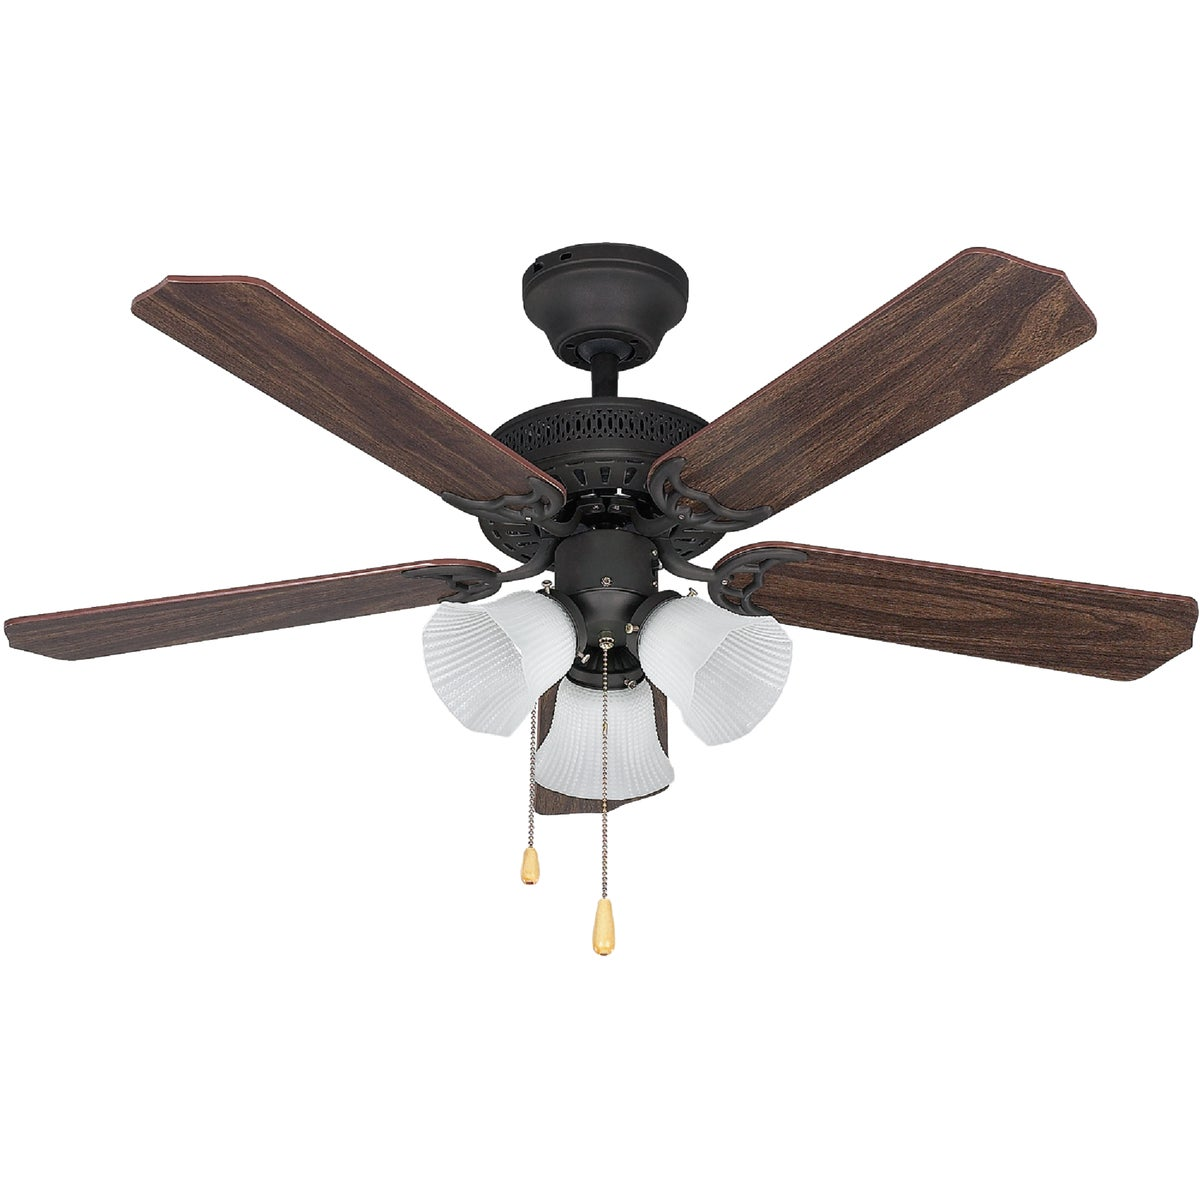 "42"" OIL BRZ CEILING FAN - CF42TRA50RB by Canarm Gs"